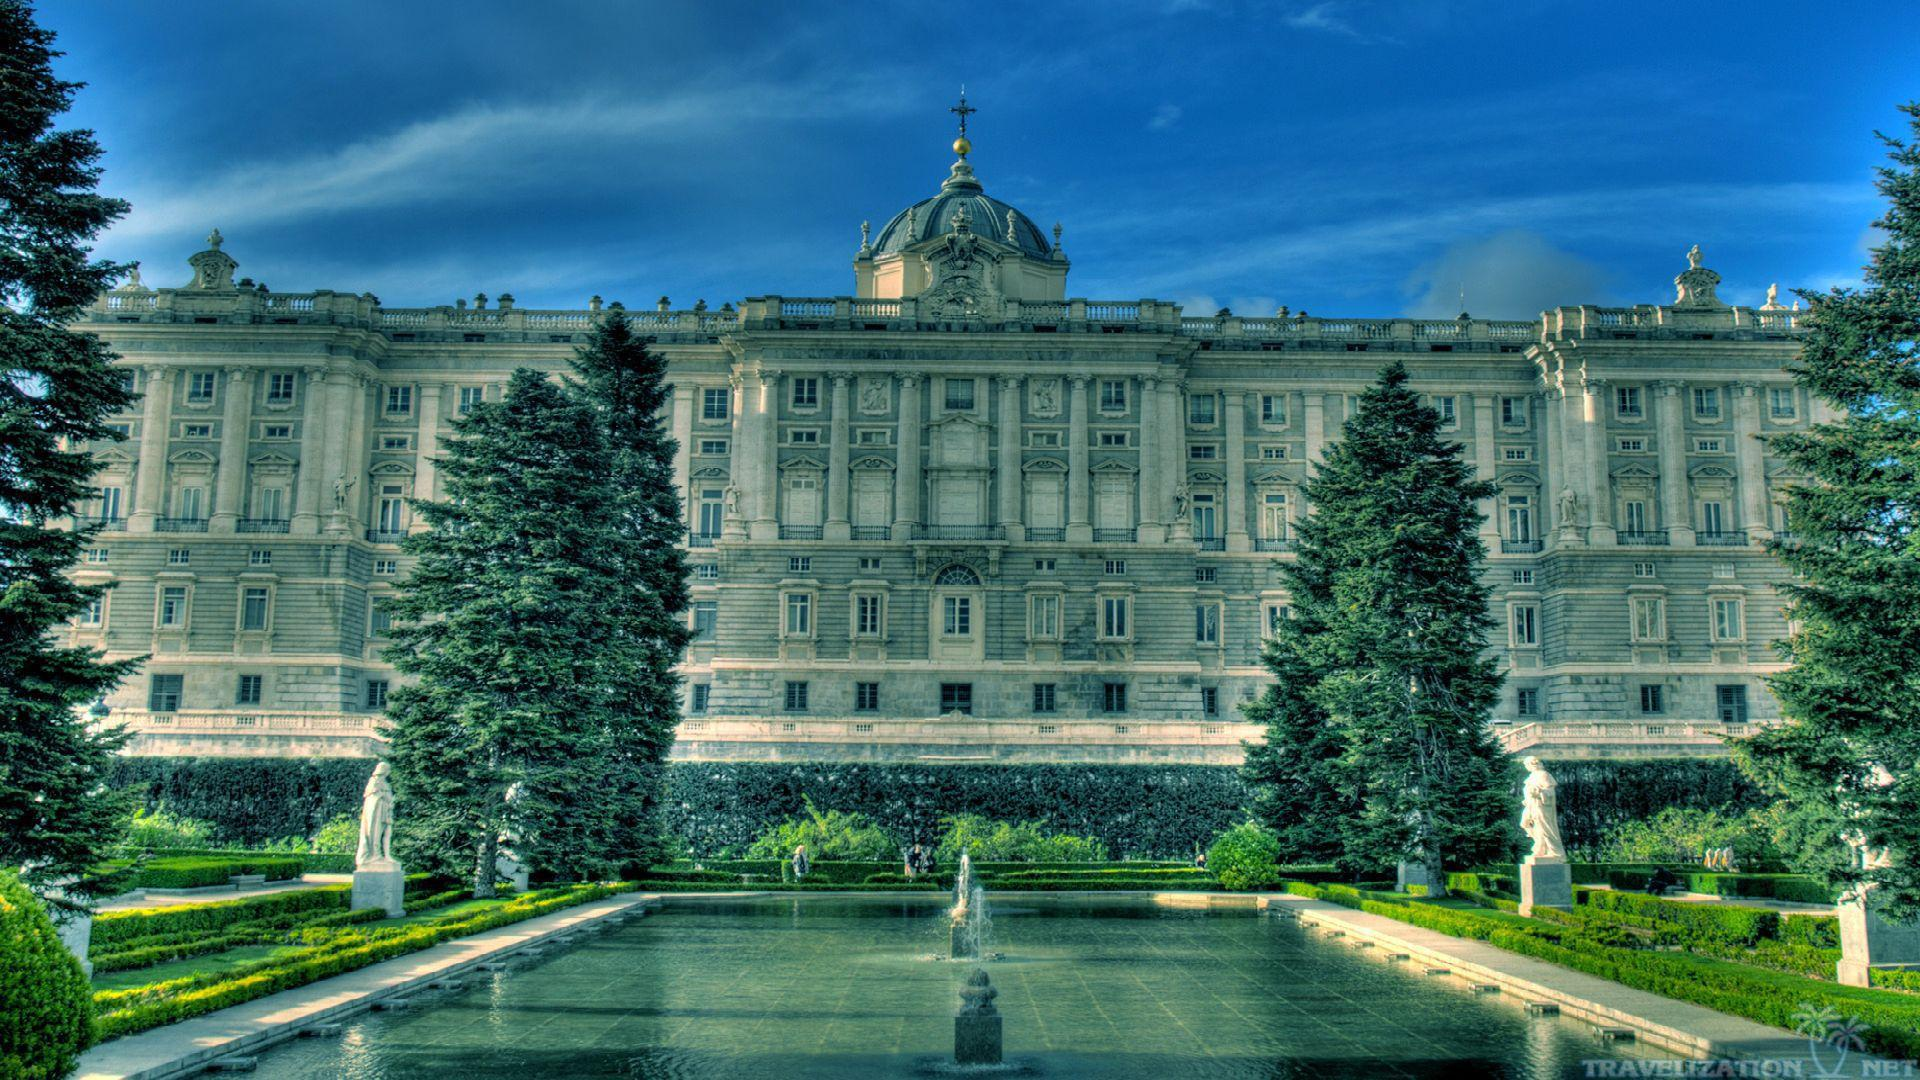 Palace of Madrid wallpapers and image